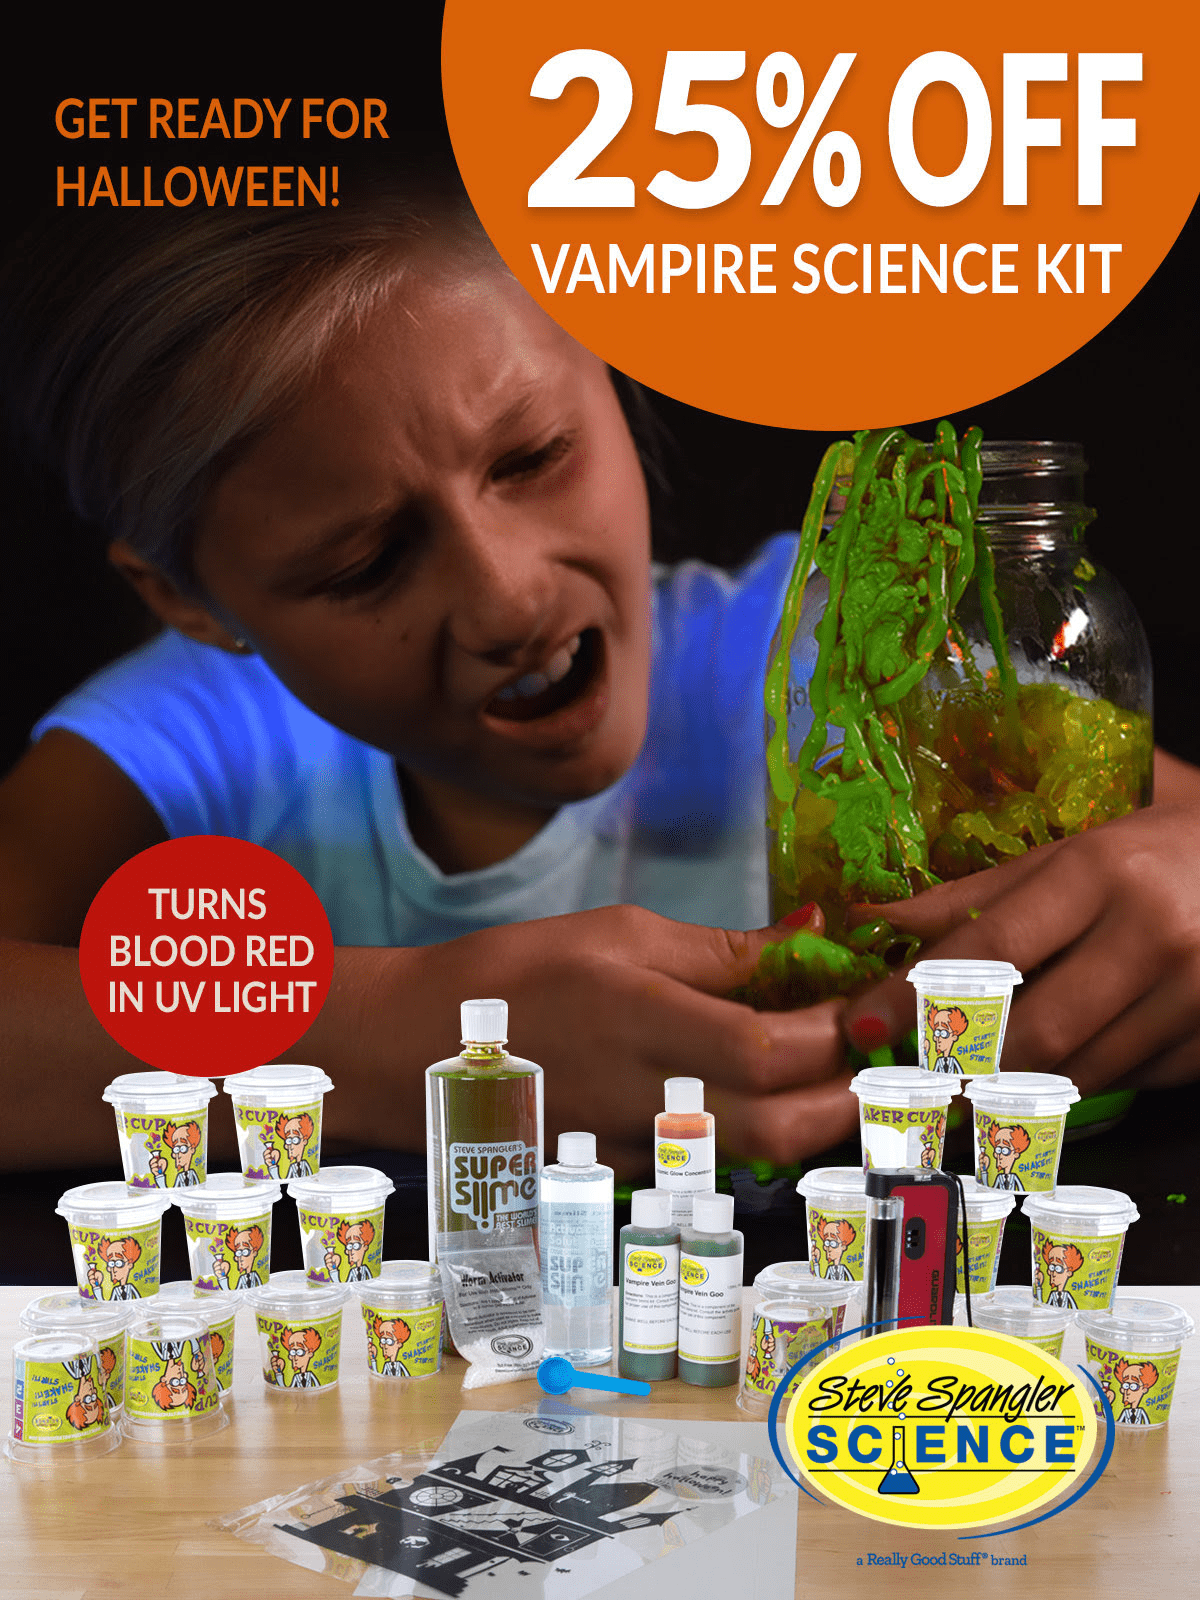 Spangler Science Club Halloween Sale: Get 25% OFF Vampire Science Kit!